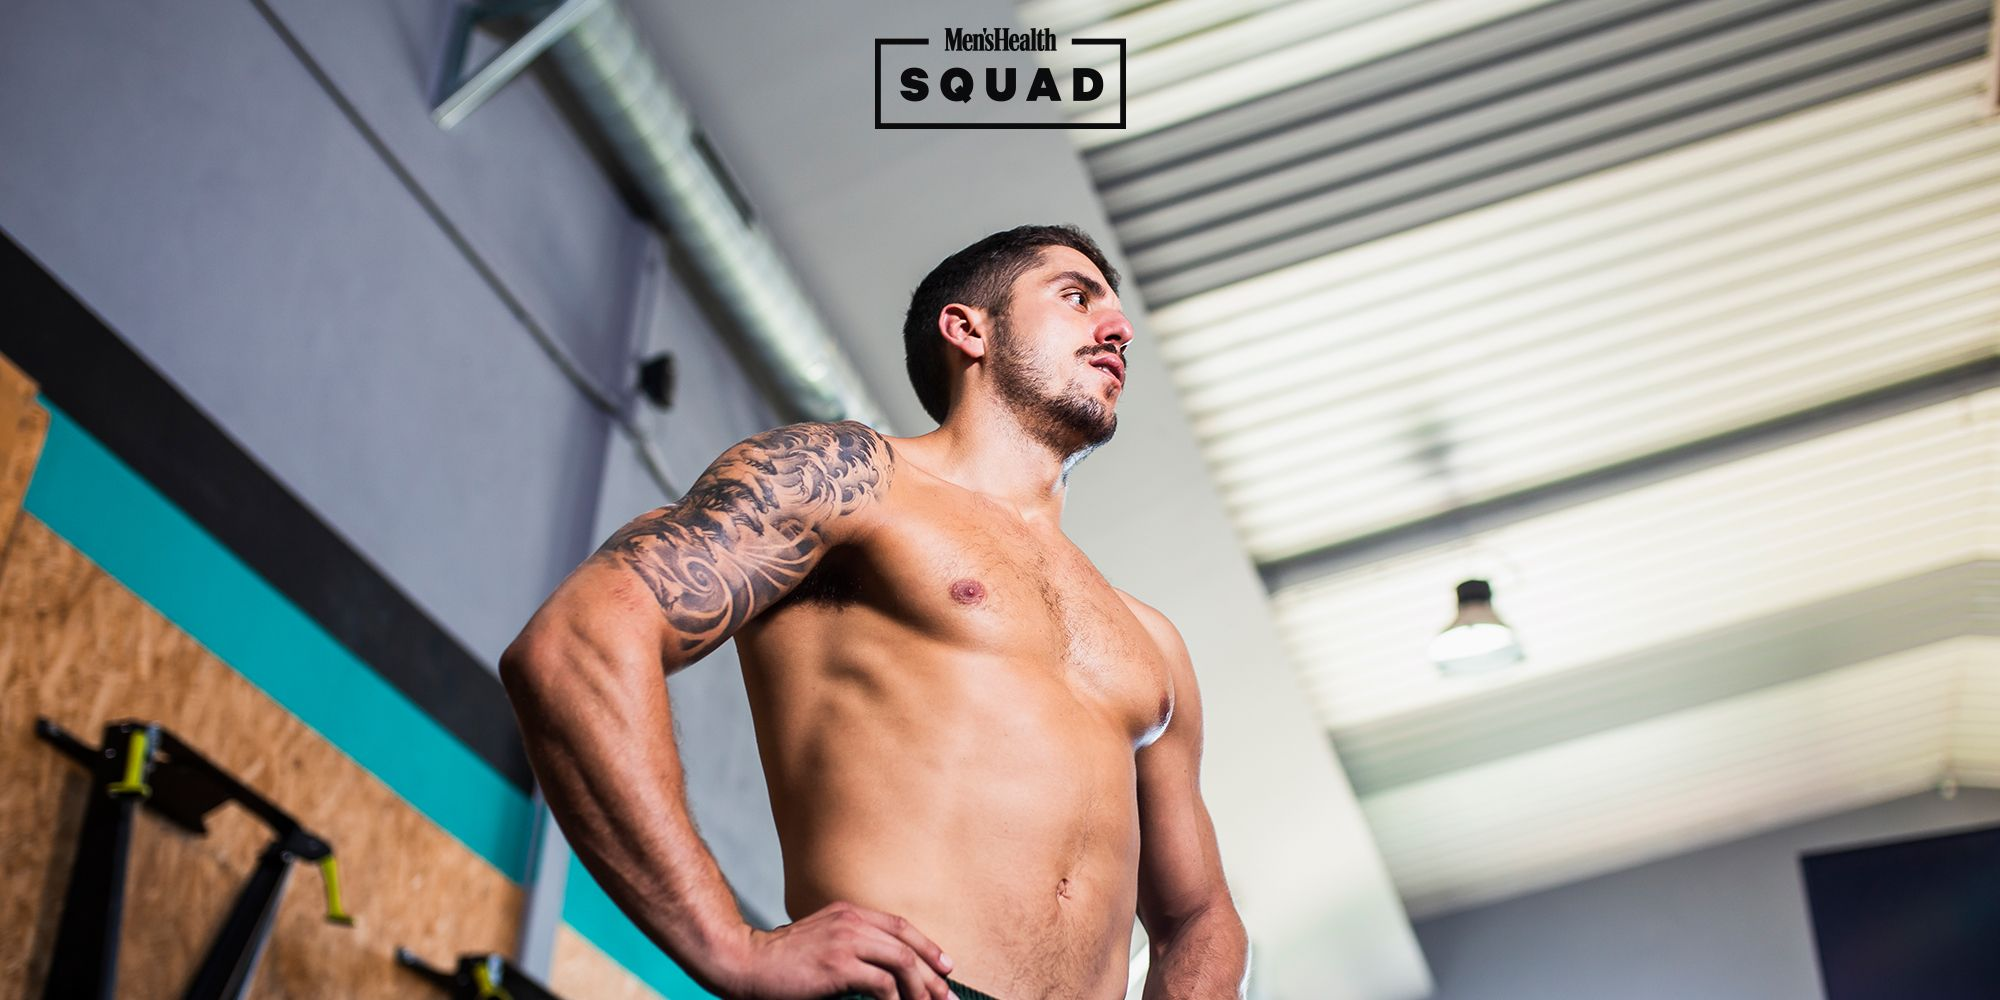 Supercharge Your Metabolism and Scorch Through Calories With This Leg-Day Burner